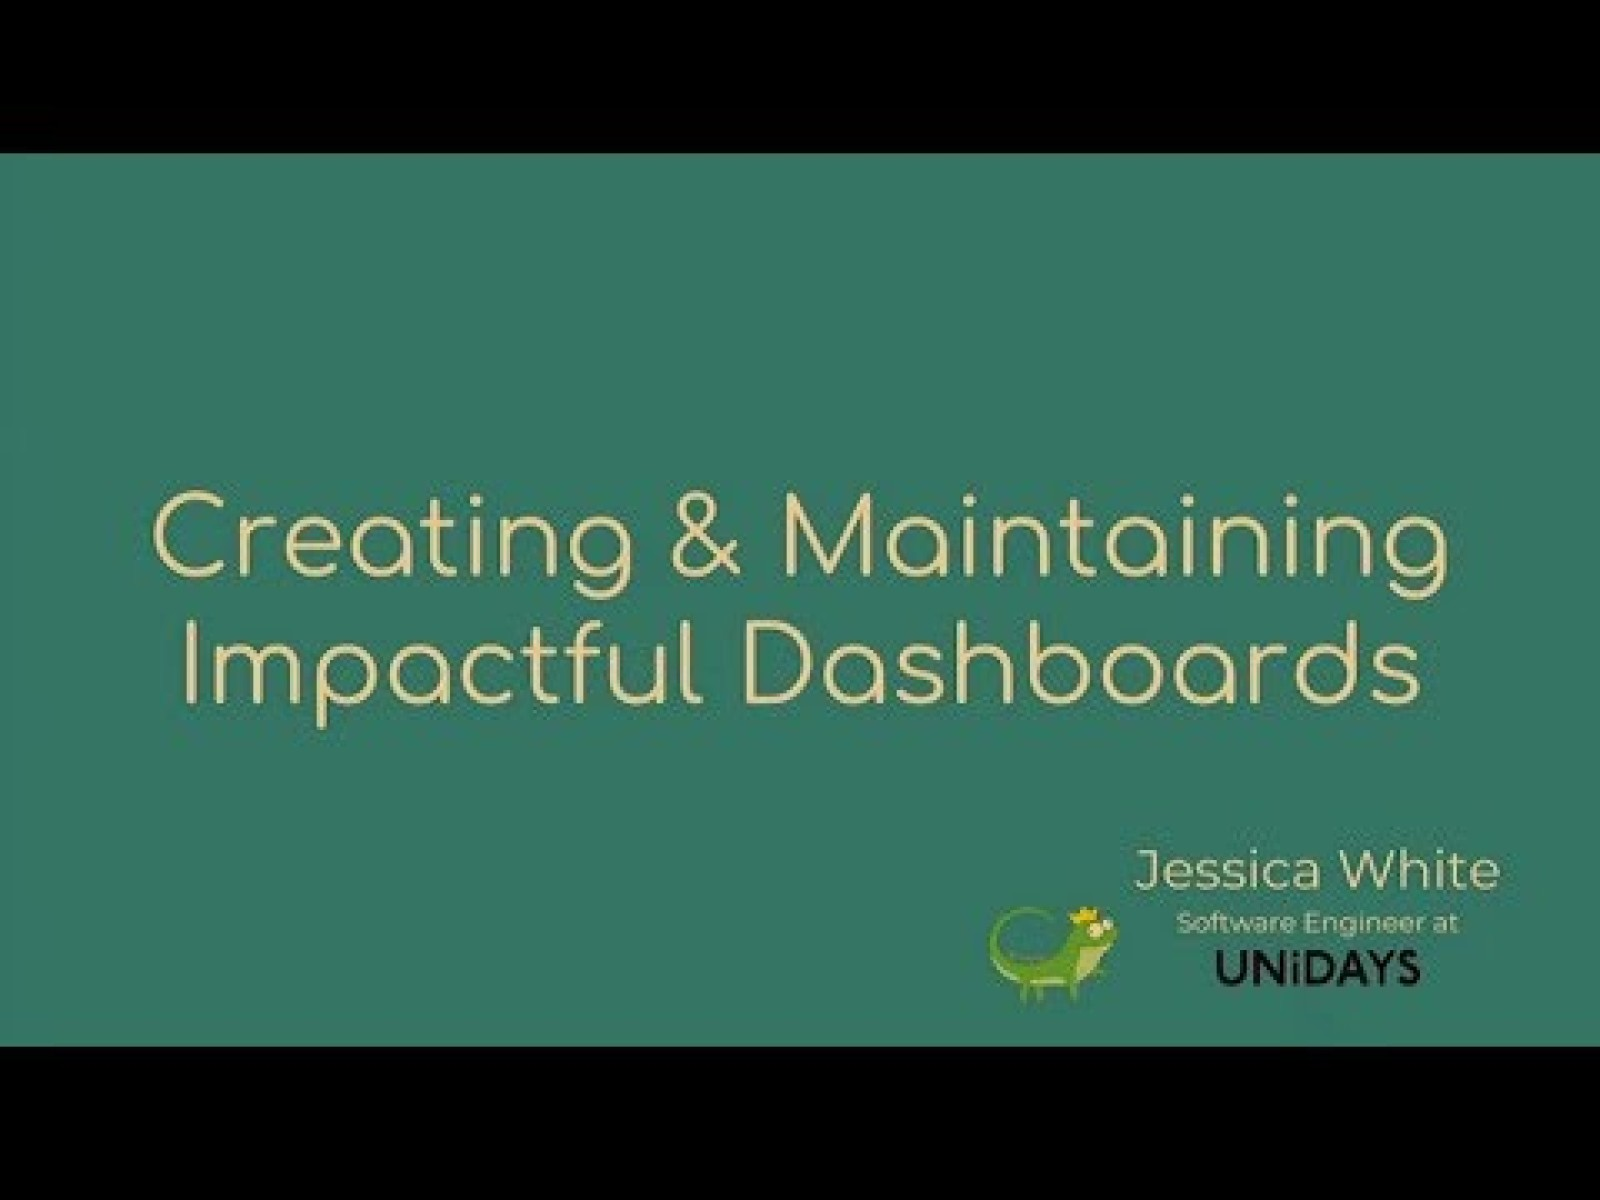 Creating & Maintaining Impactful Dashboards